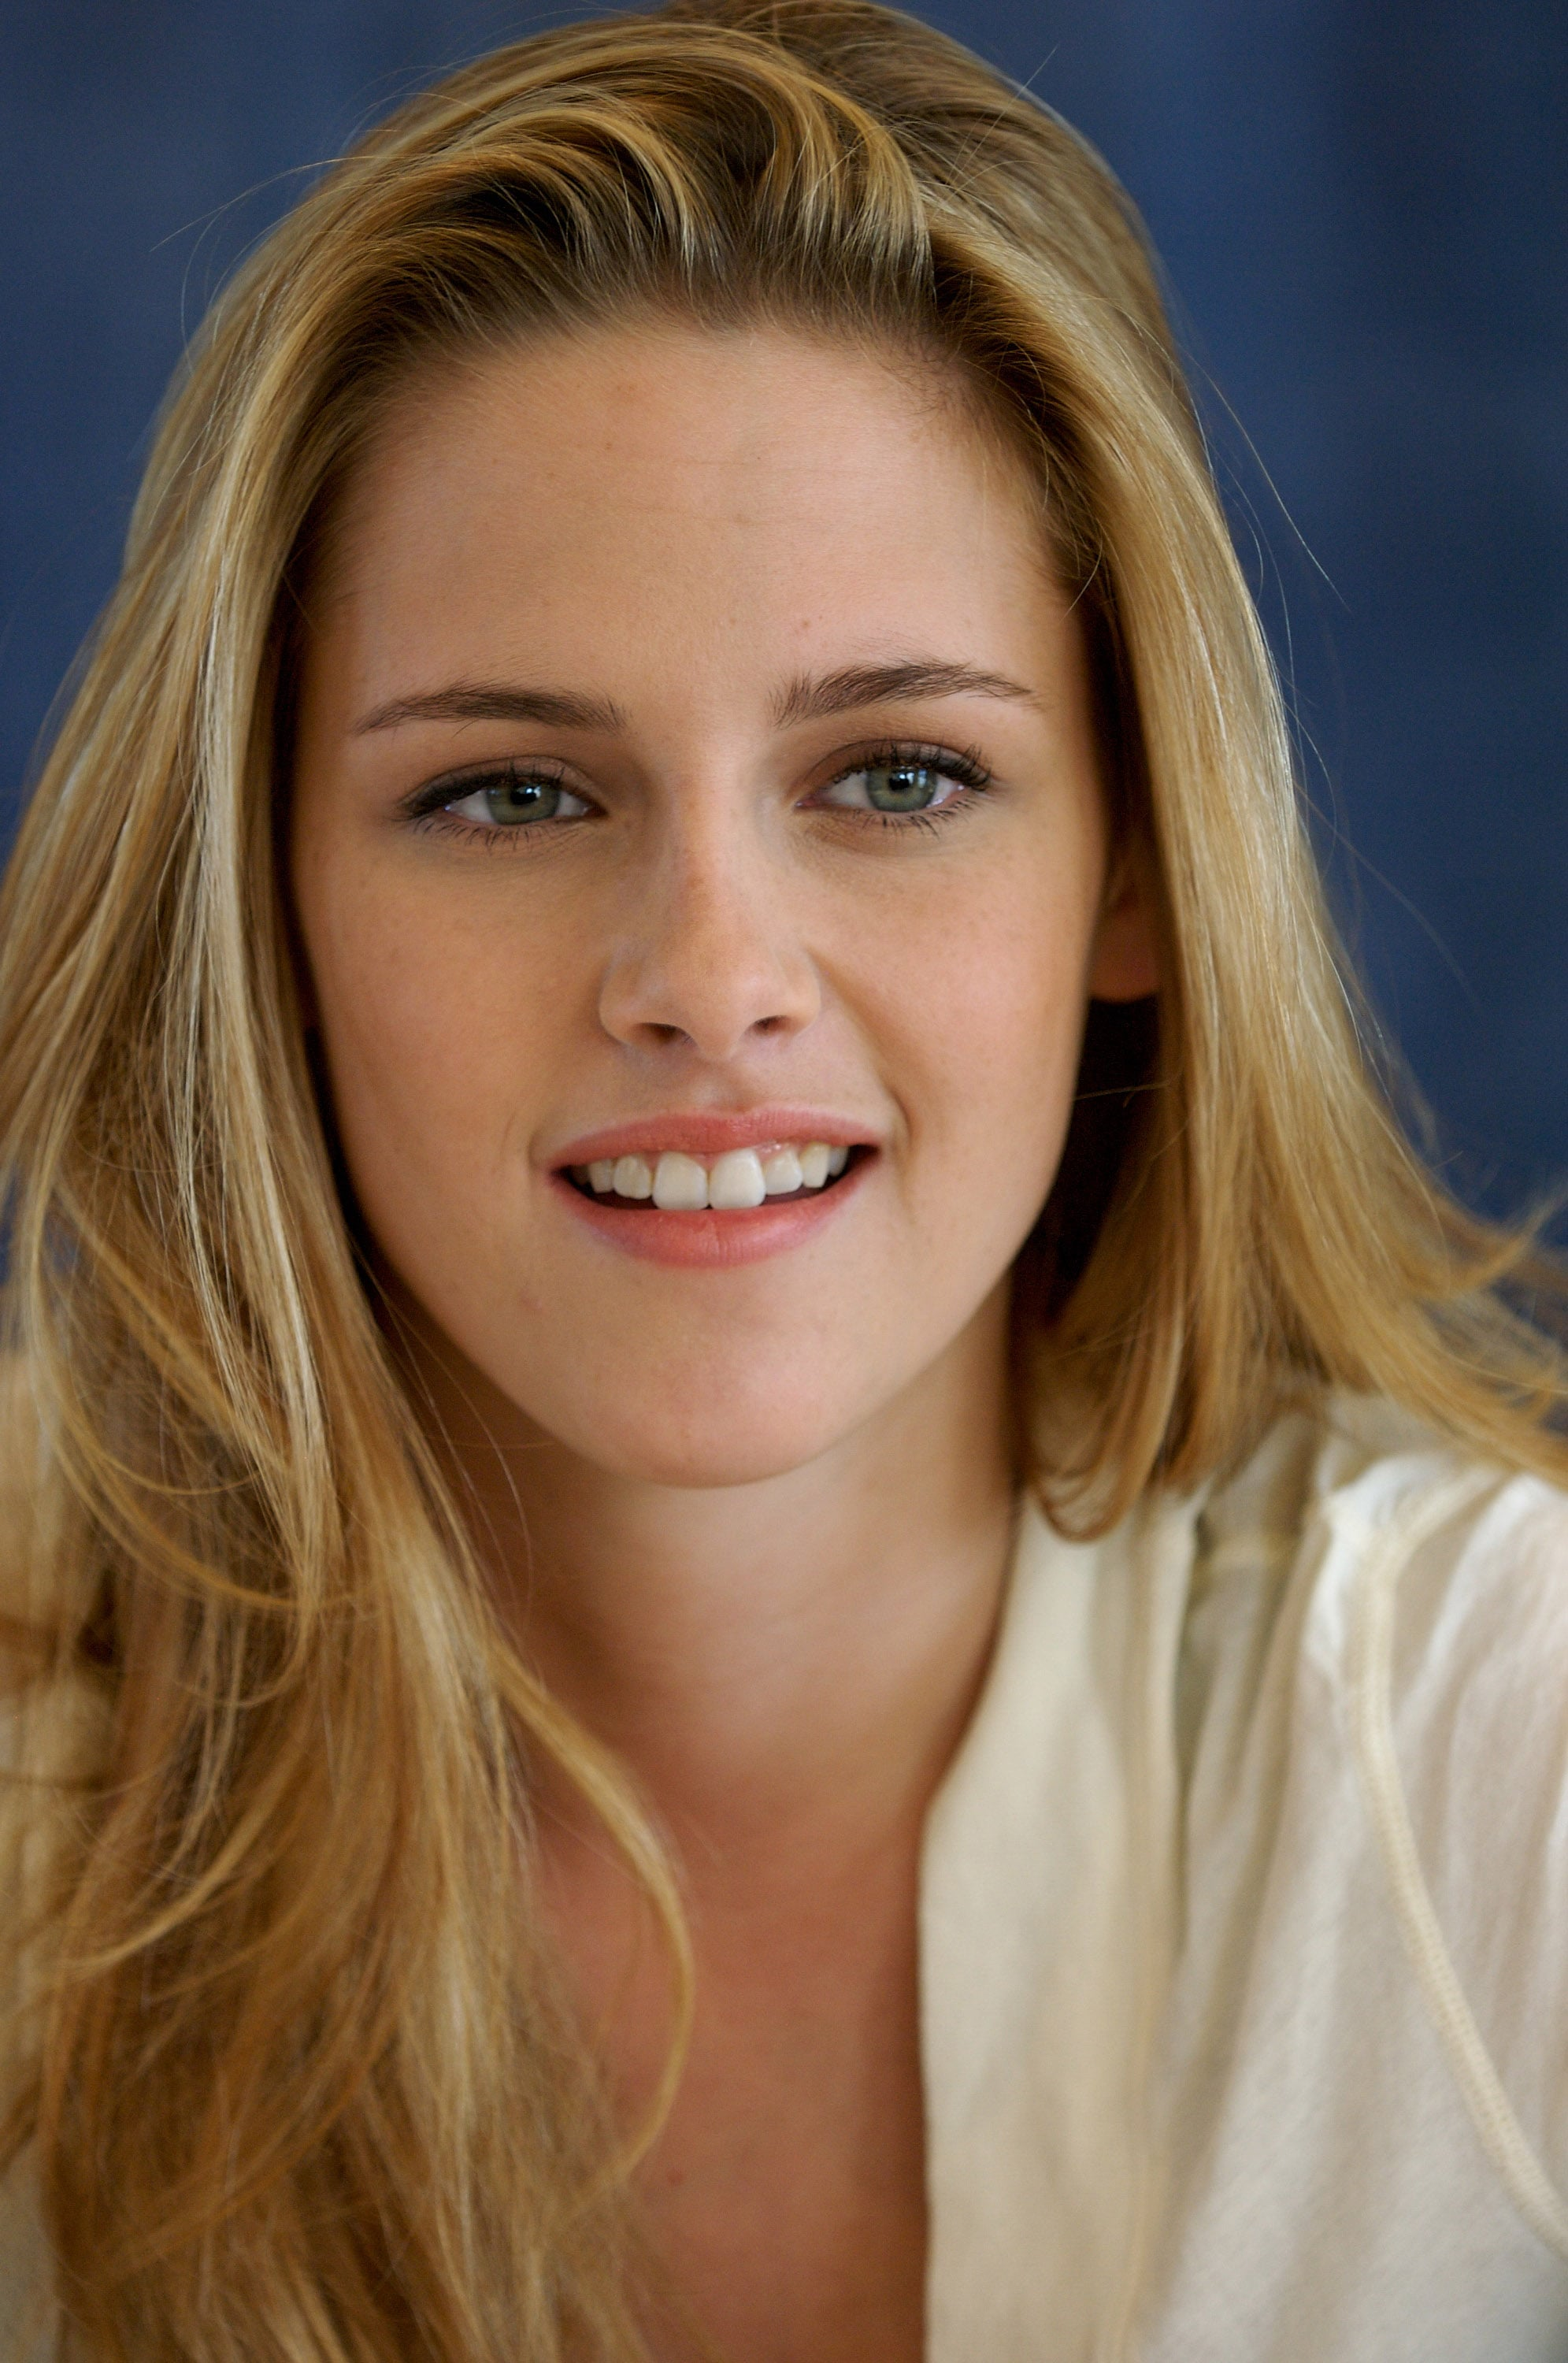 Kristen Stewart showed off her blond hair at the Into the Wild press conference in Beverly Hills in September 2007.